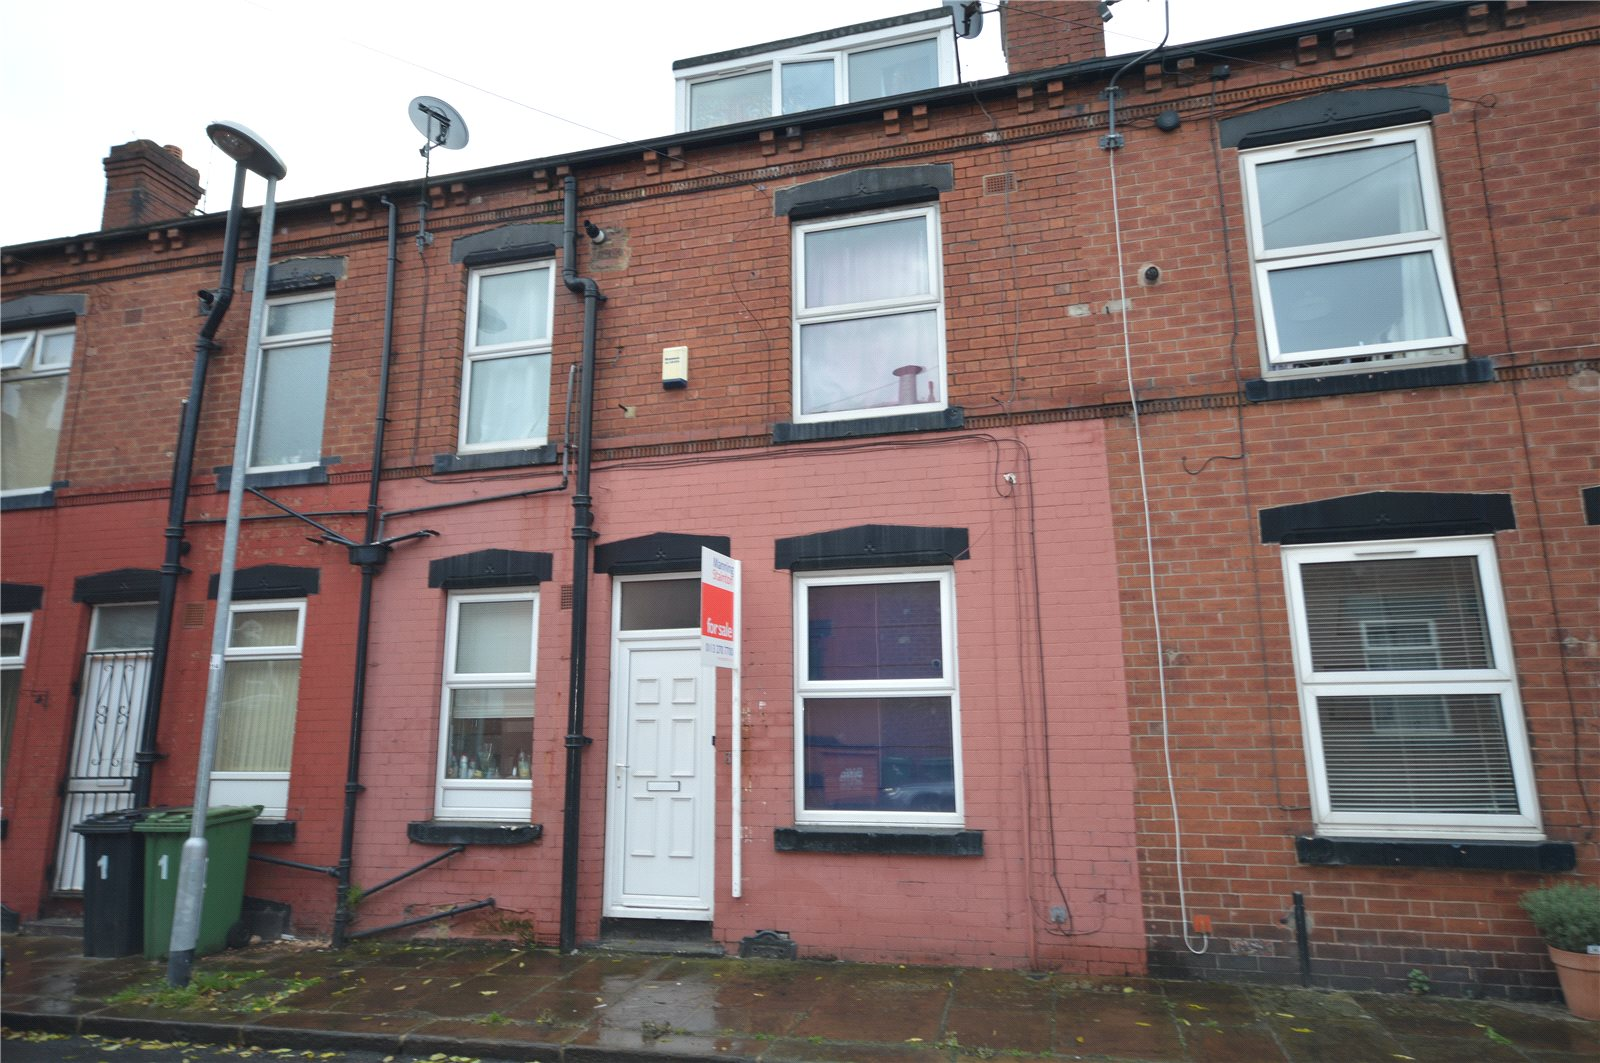 Property for sale in Beeston, exterior of terraced red brick home